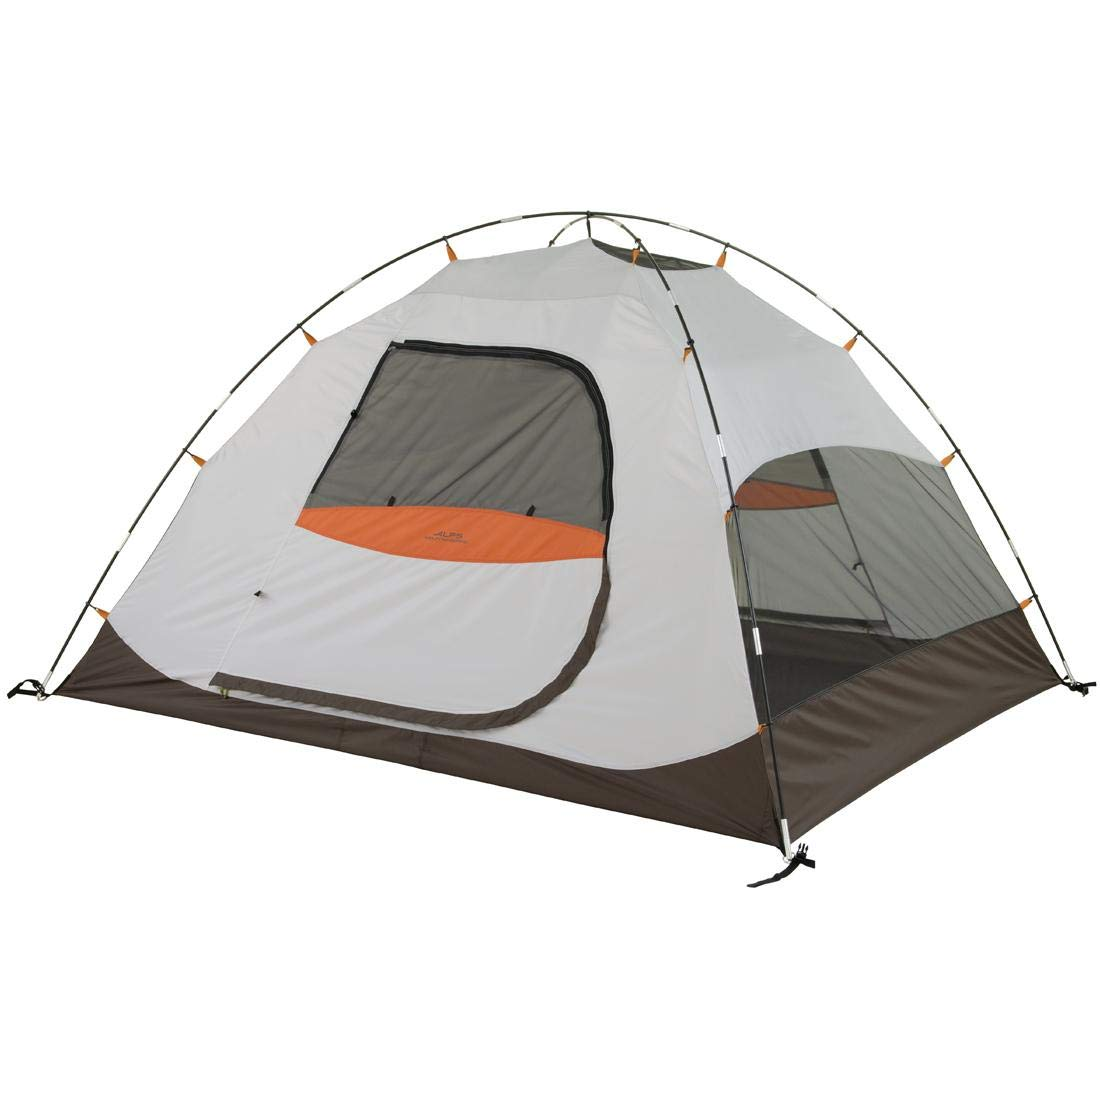 [ALPS Mountaineering] [ALPS Mountaineering 3人用テント Meramac 3-Person Tent] (並行輸入品) One Size One Color B07H83QSGH